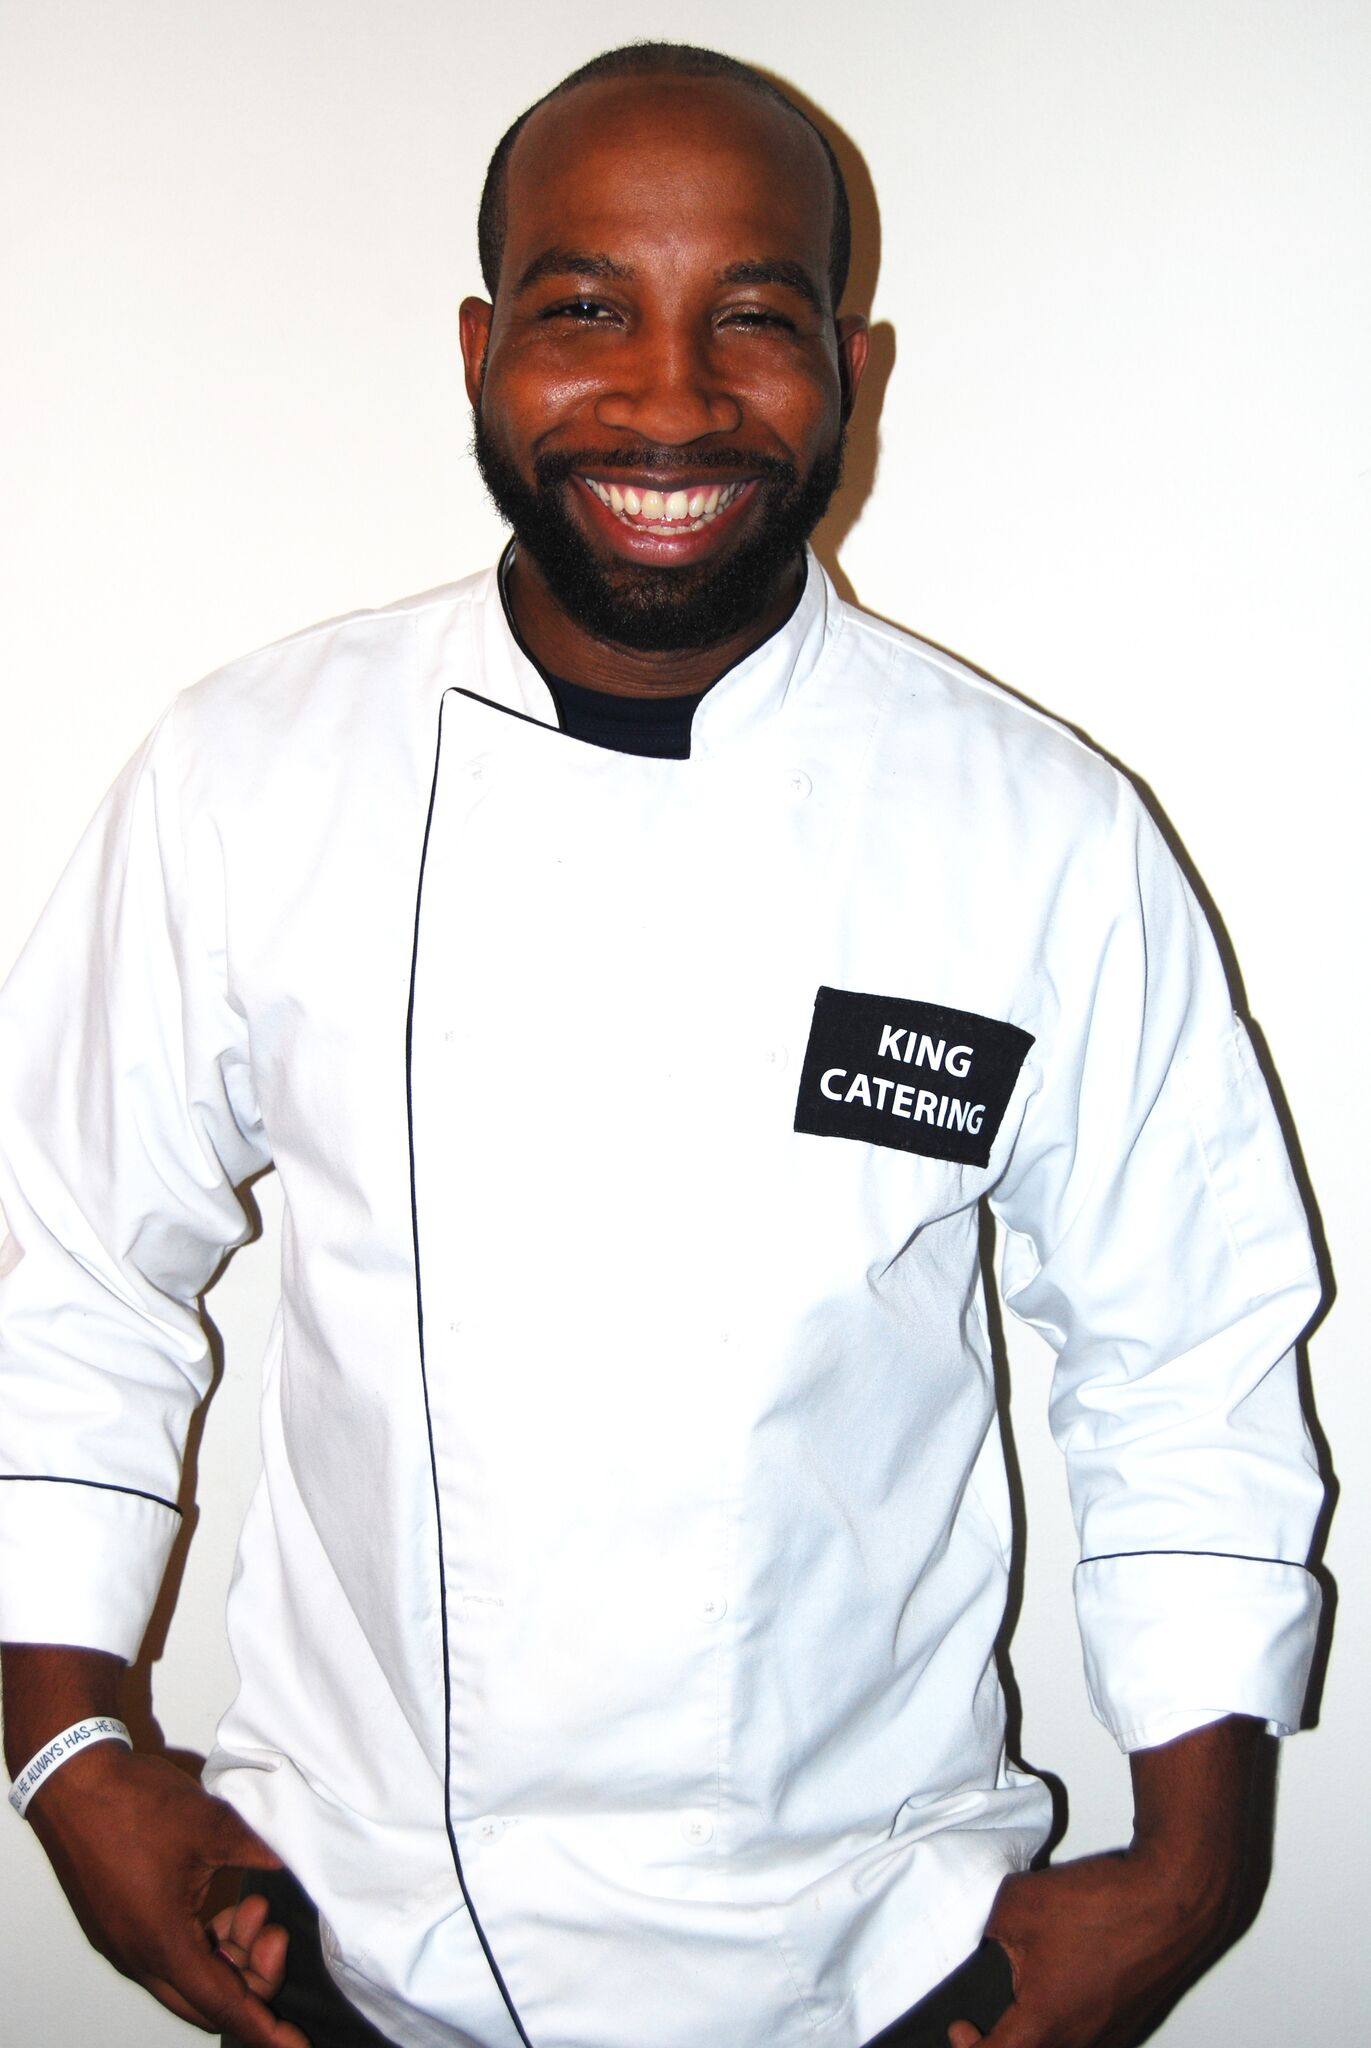 Meet the Chef - Deon King, founder and CEO of King Catering,